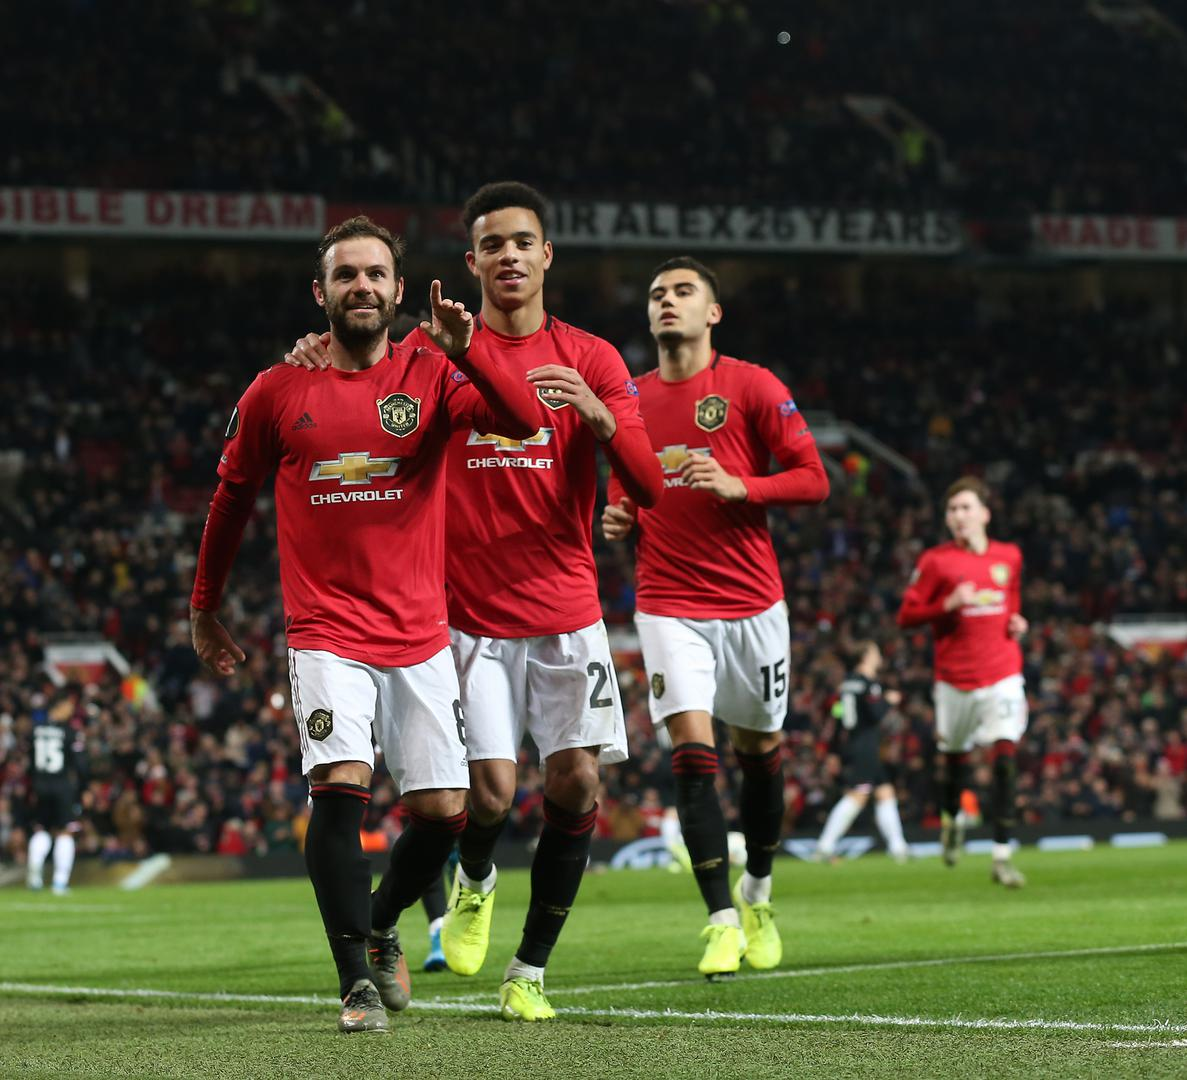 Manchester United players celebrate scoring against AZ Alkmaar.